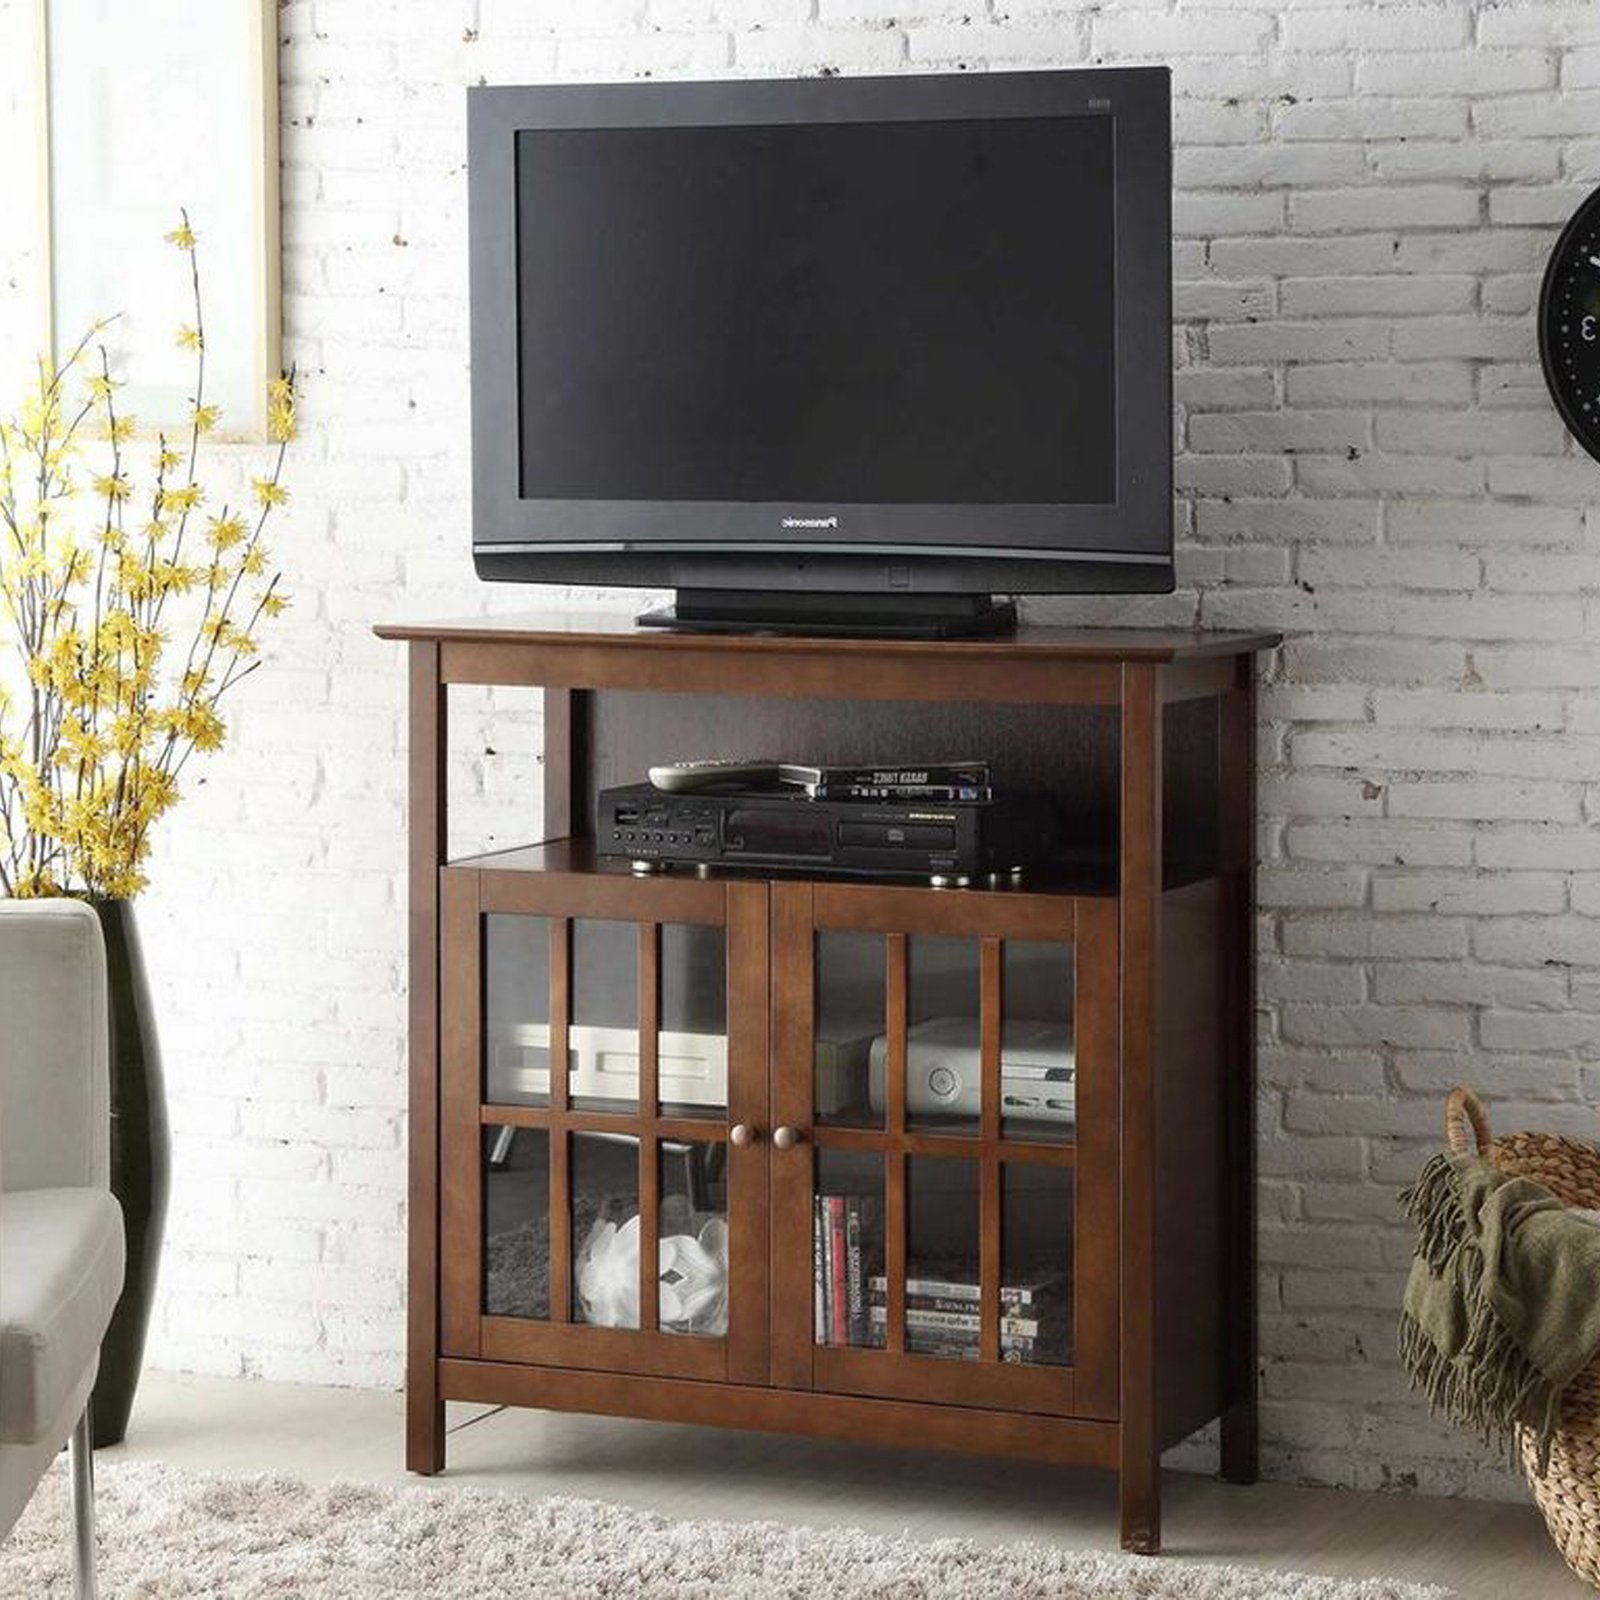 Tv Stands & Entertainment Centers | Hayneedle Intended For Murphy 72 Inch Tv Stands (View 16 of 20)